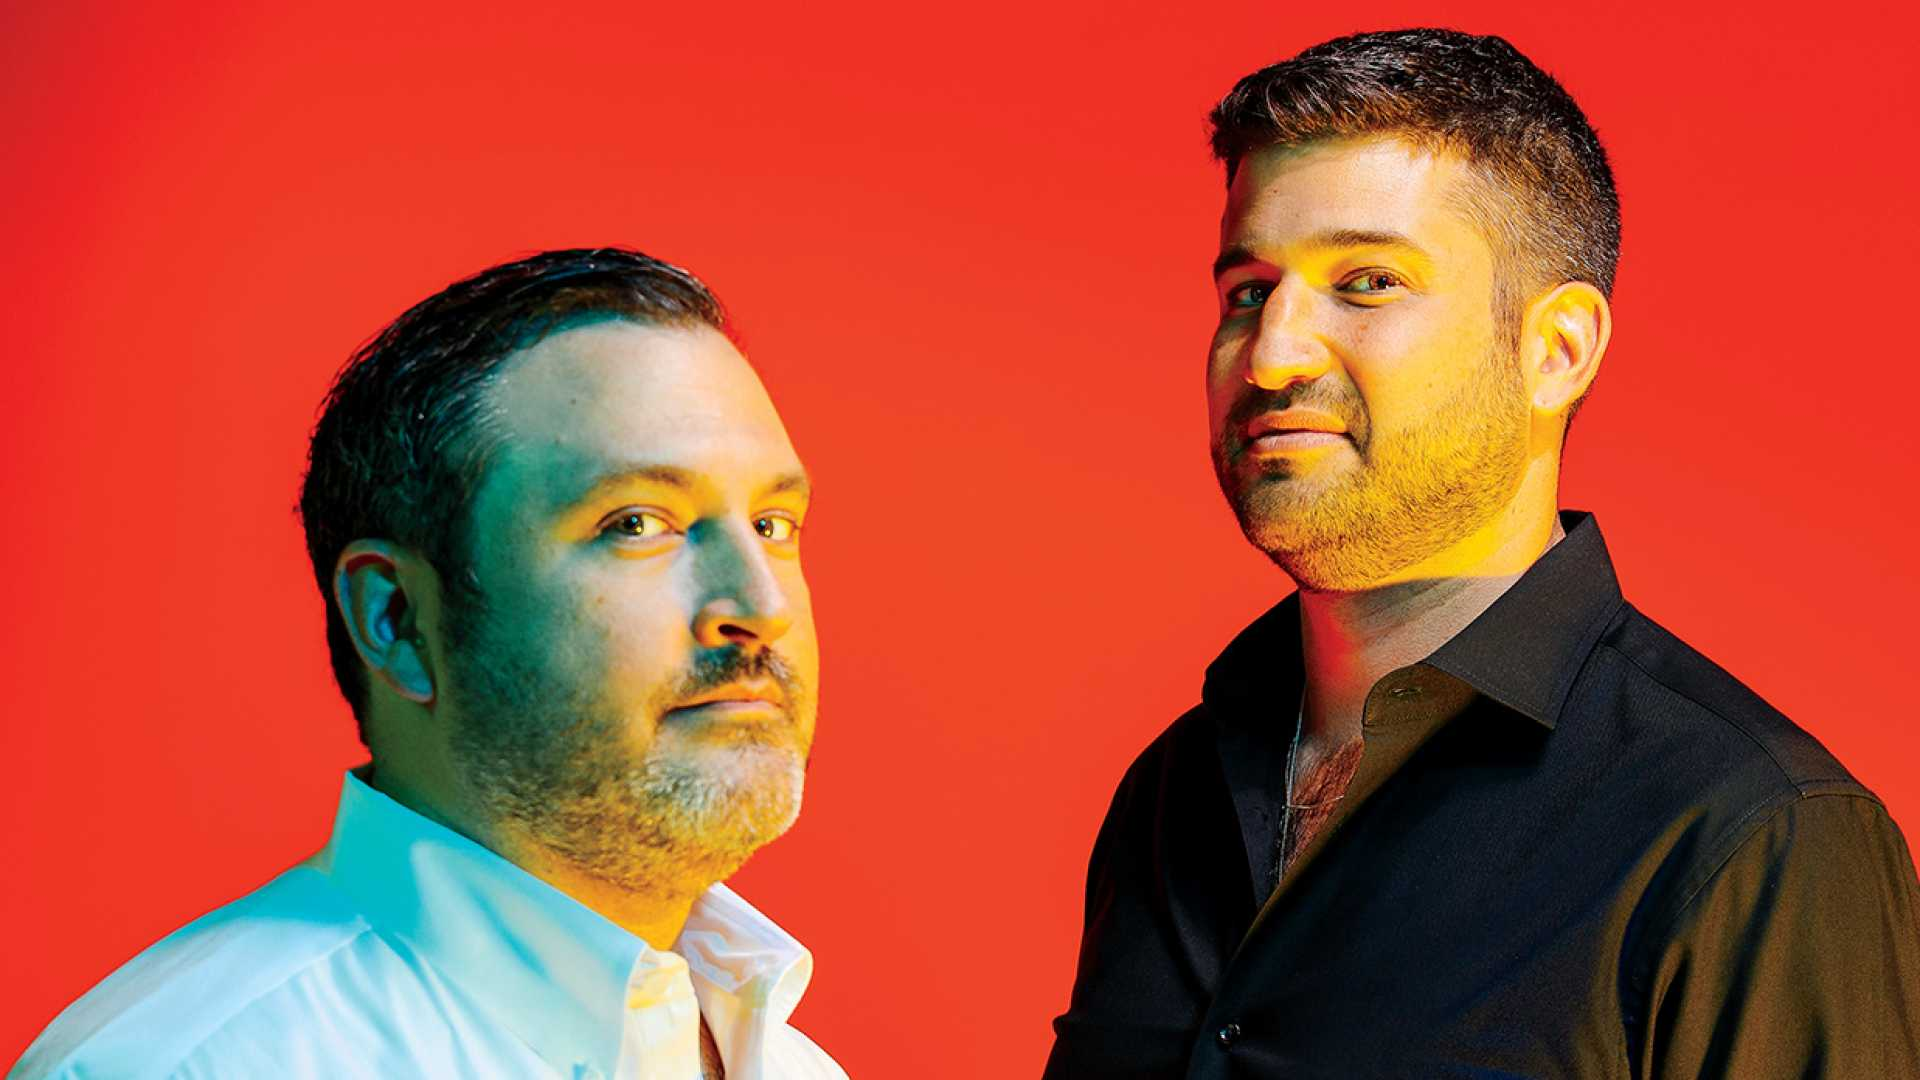 When Freestar co-founders Chris Stark (left) and David Freedman started their business, it was built on a very different idea than the one that ultimately landed them atop this year's Inc. 500.